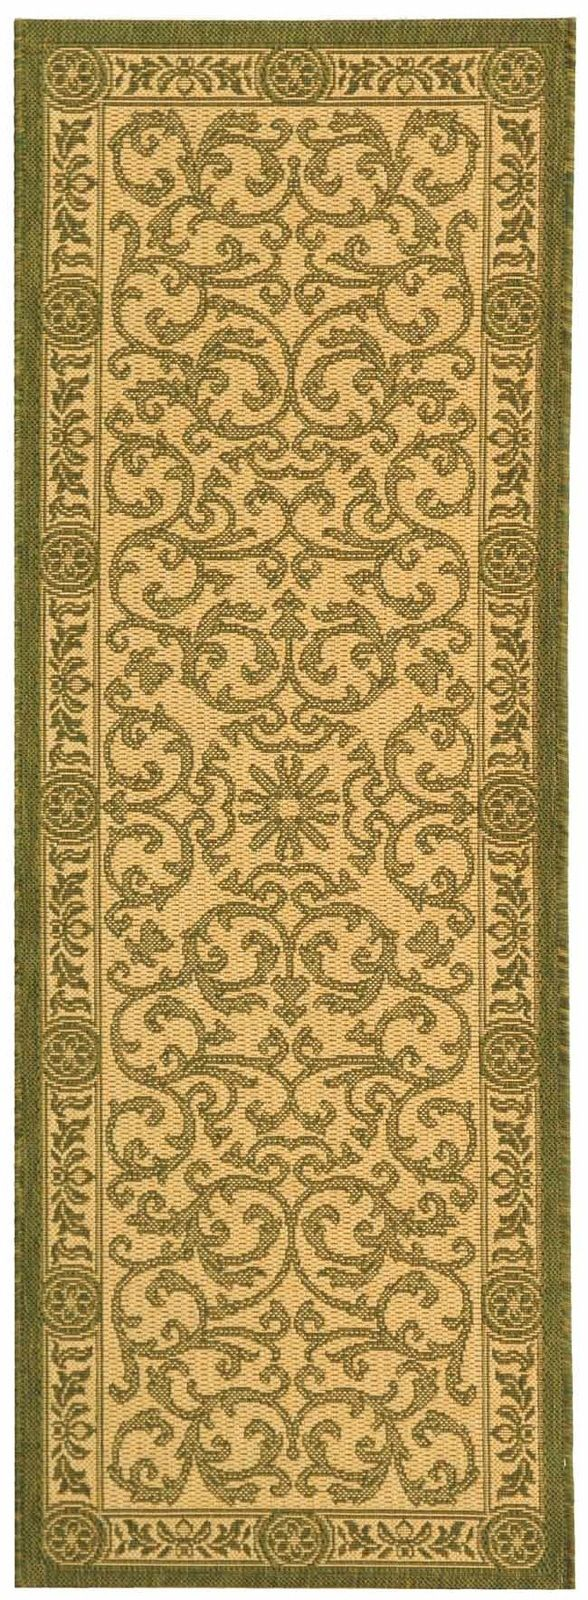 Safavieh Courtyard Indoor Outdoor Area Rug Collection